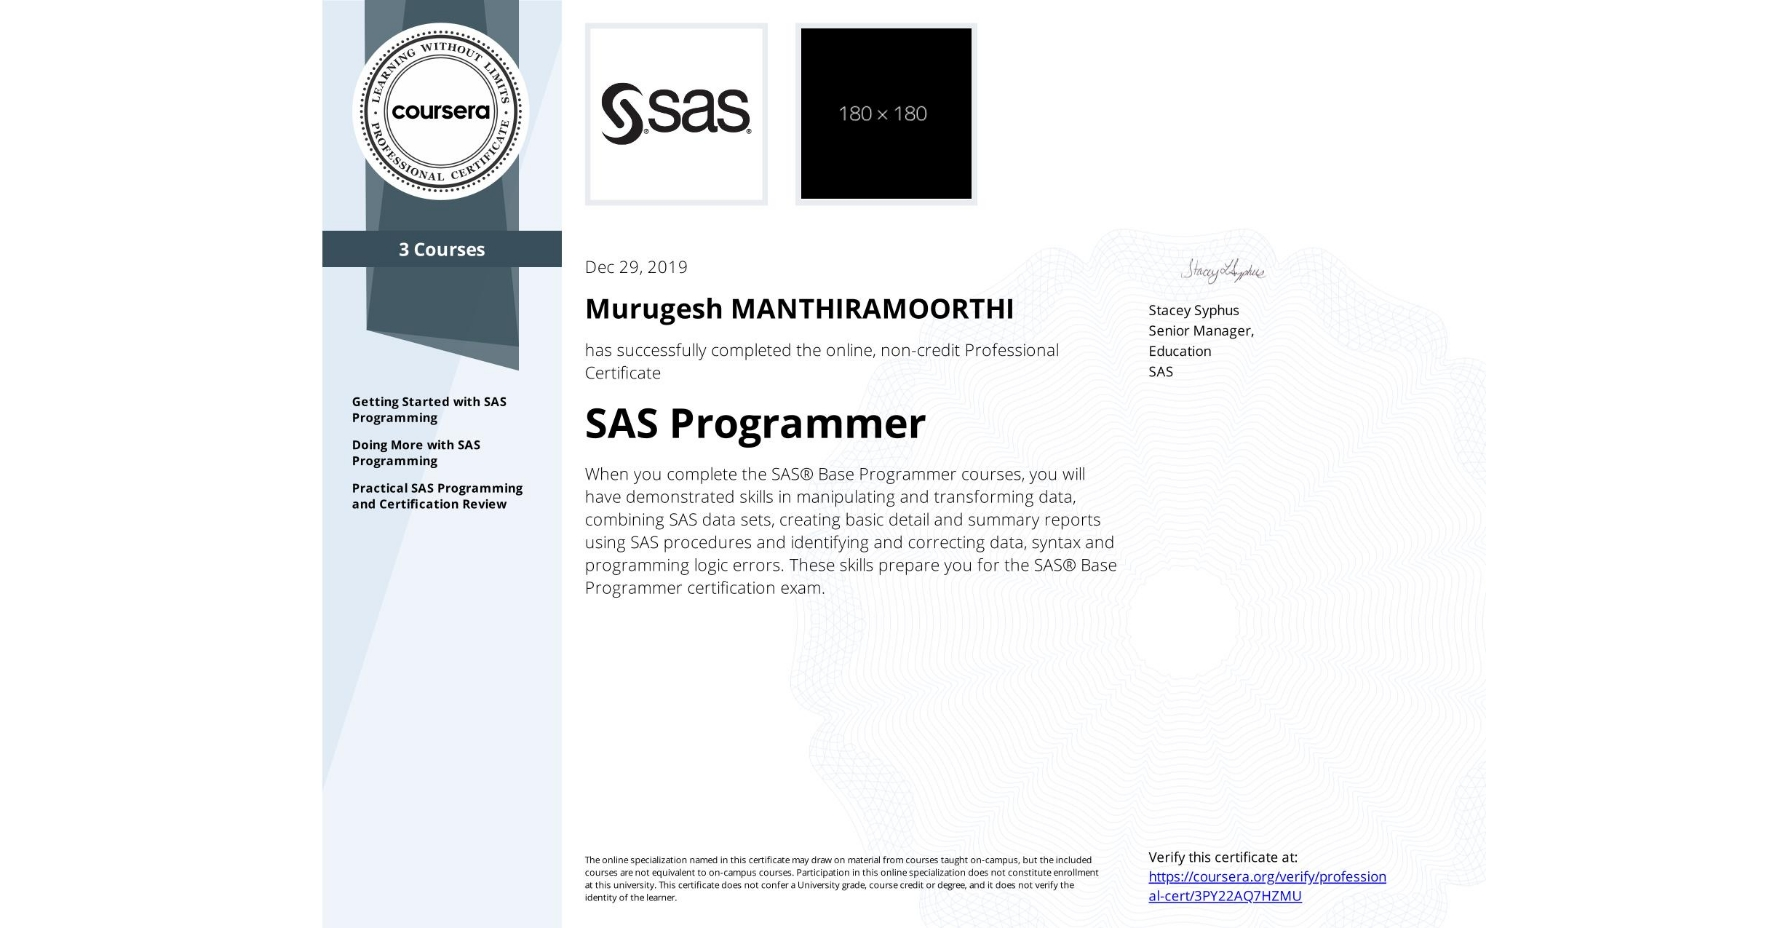 View certificate for Murugesh Manthiramoorthi, SAS Programmer, offered through Coursera. When you complete the SAS® Base Programmer courses, you will have demonstrated skills in manipulating and transforming data, combining SAS data sets, creating basic detail and summary reports using SAS procedures and identifying and correcting data, syntax and programming logic errors. These skills prepare you for the SAS® Base Programmer certification exam.